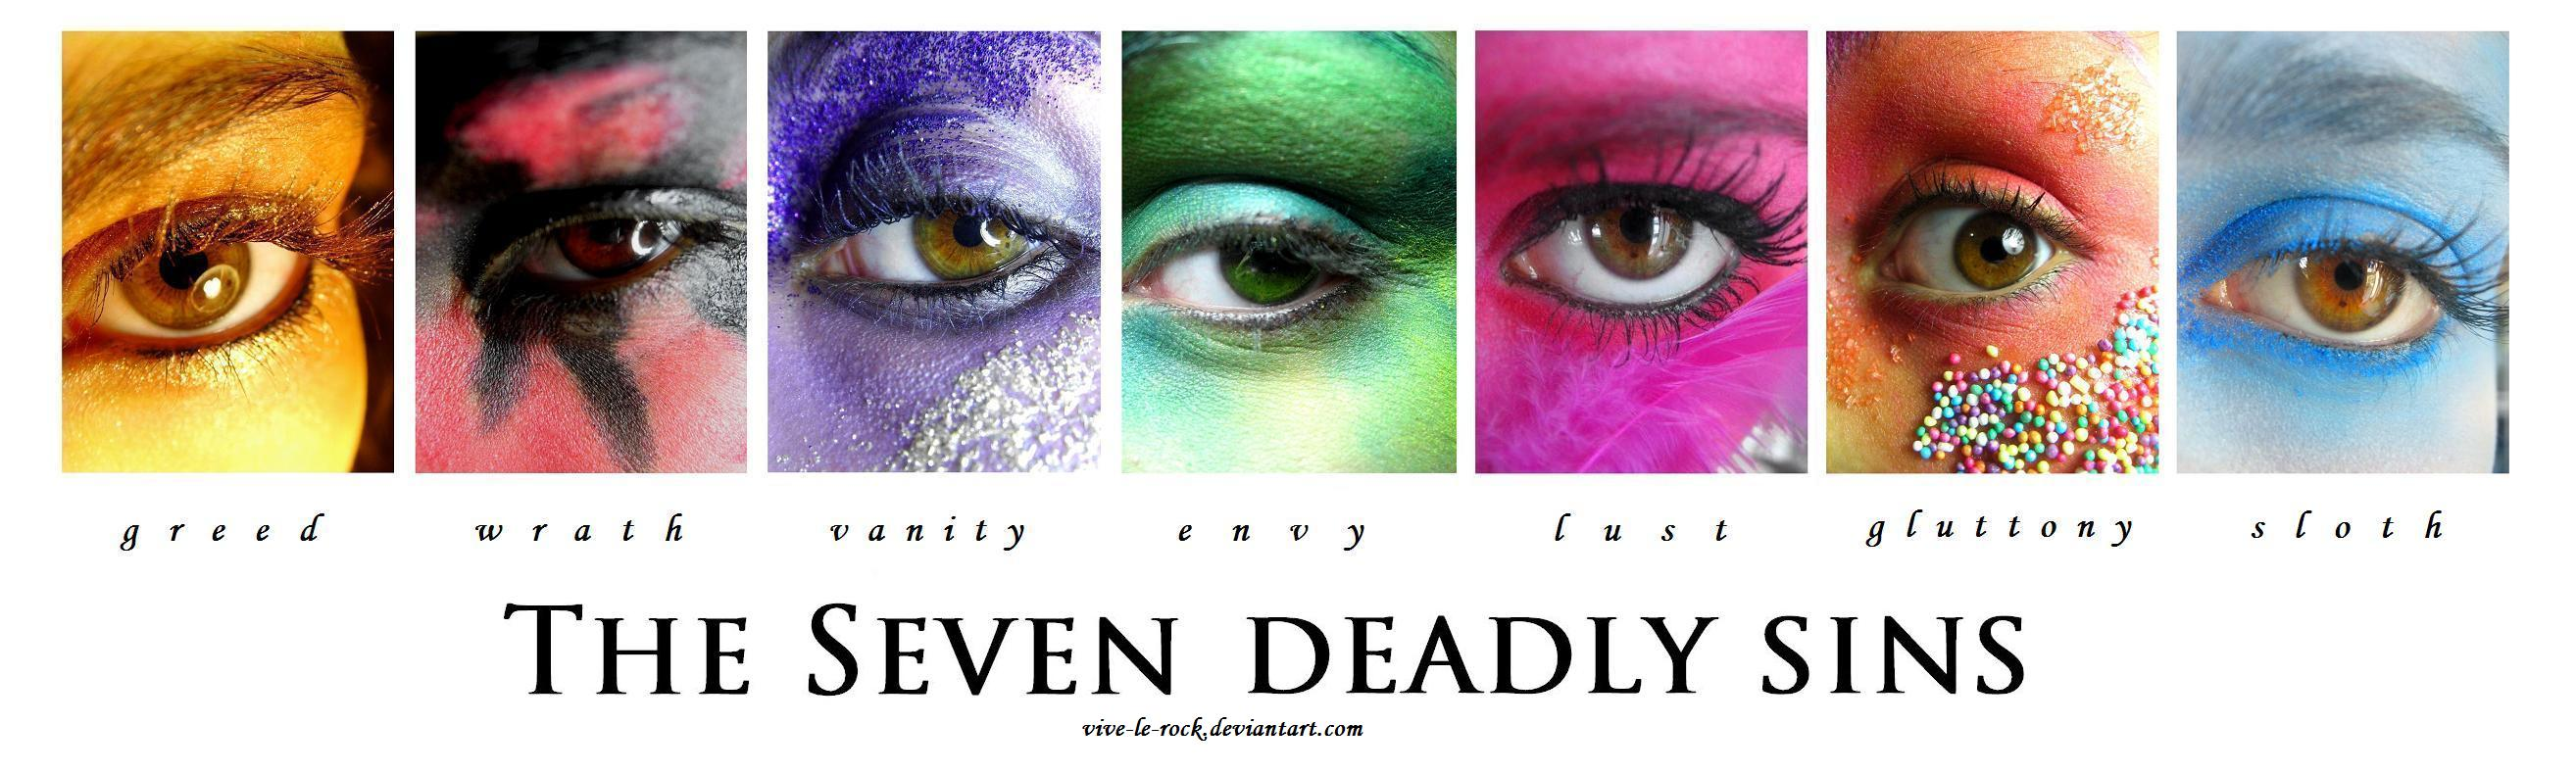 the seven deadly social sins In 2007 as i was leaving my job running a children's advocacy organization to become the founding executive director of a new foundation, darren walker presented me with the seven deadly.